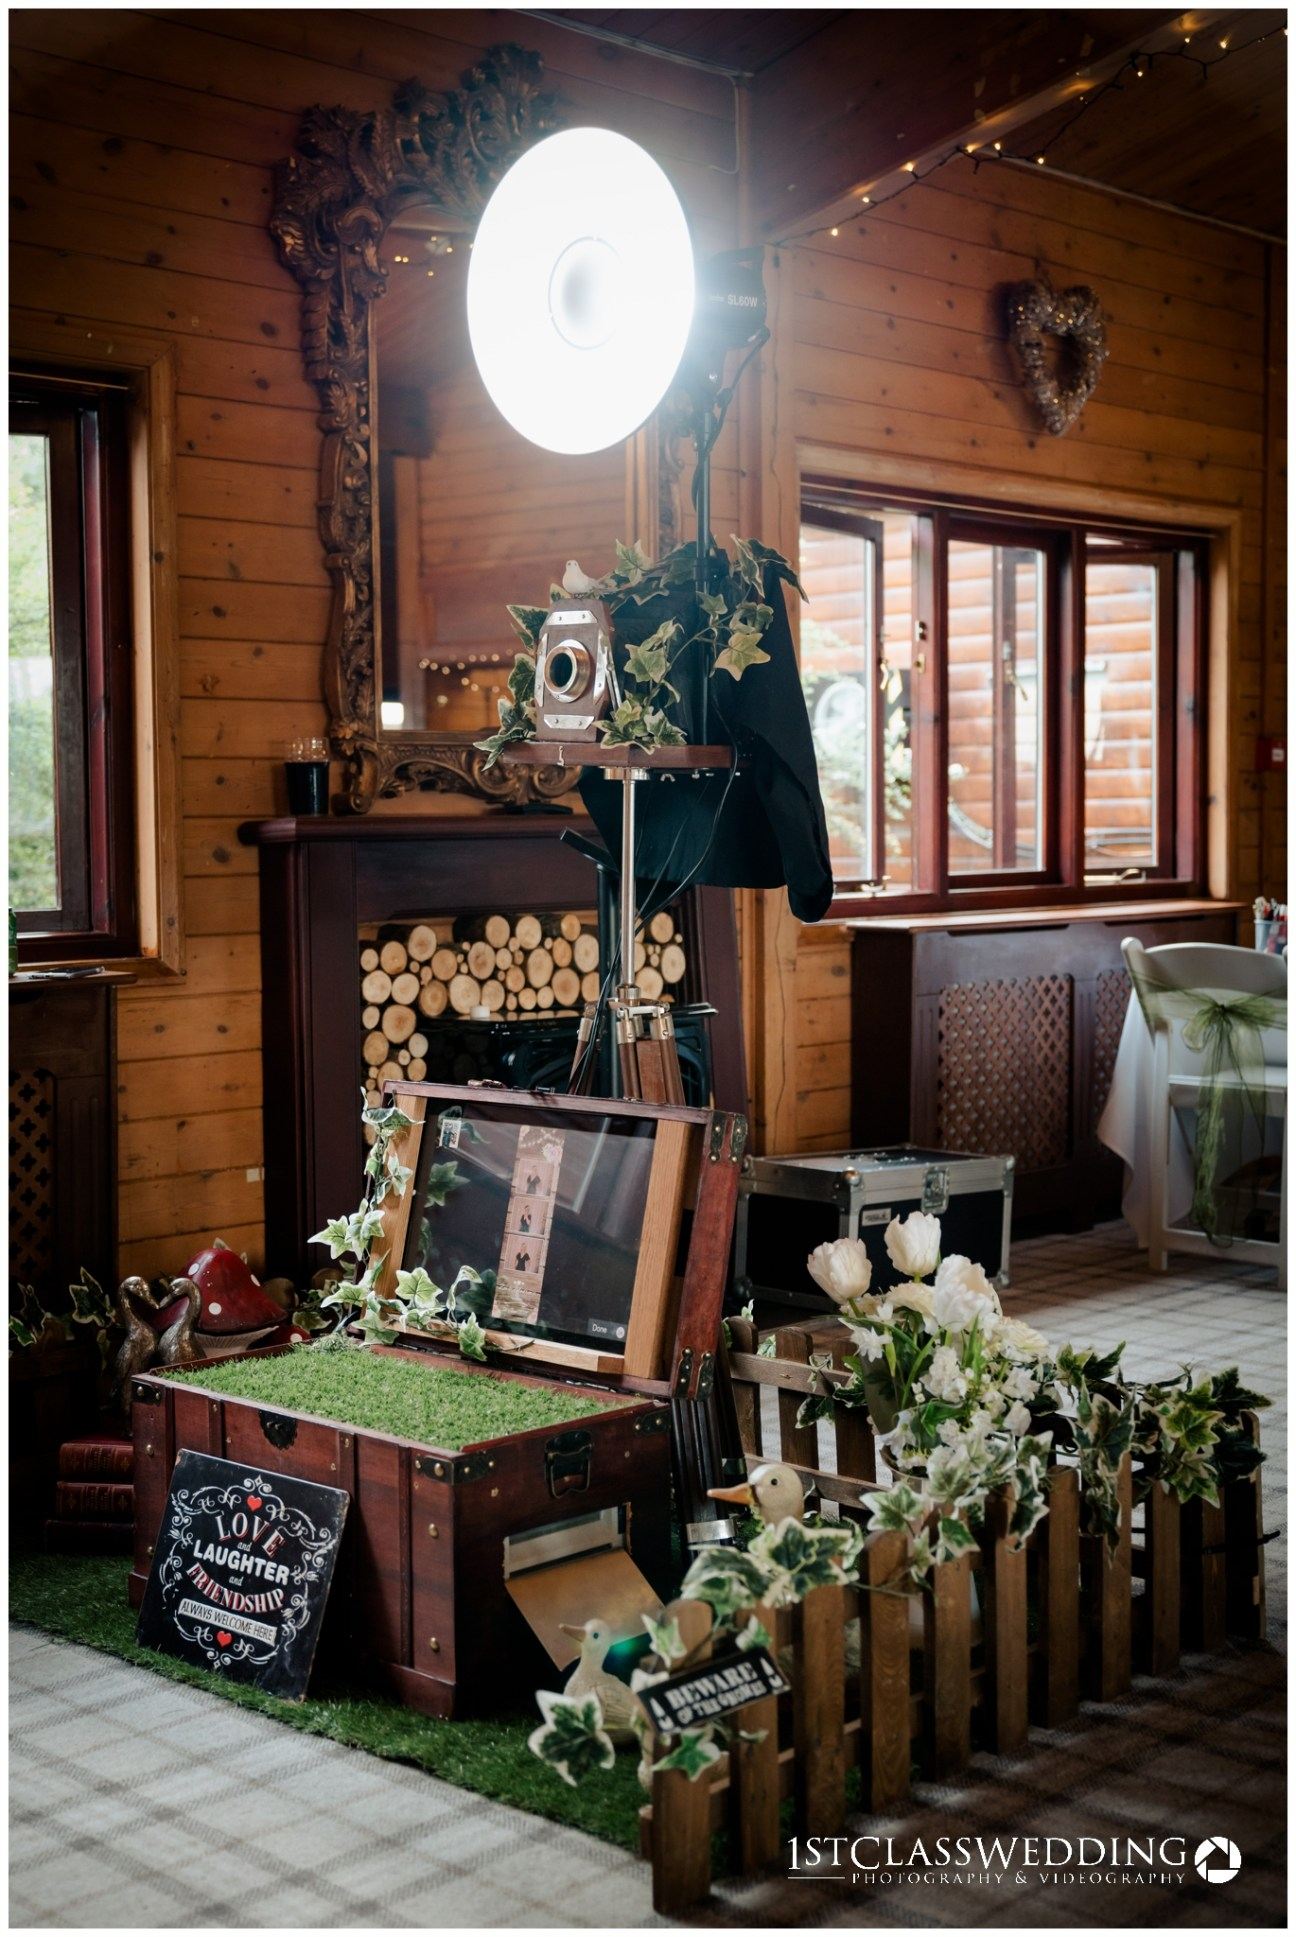 vintage photobooth setup for a wedding at Grendon Lakes